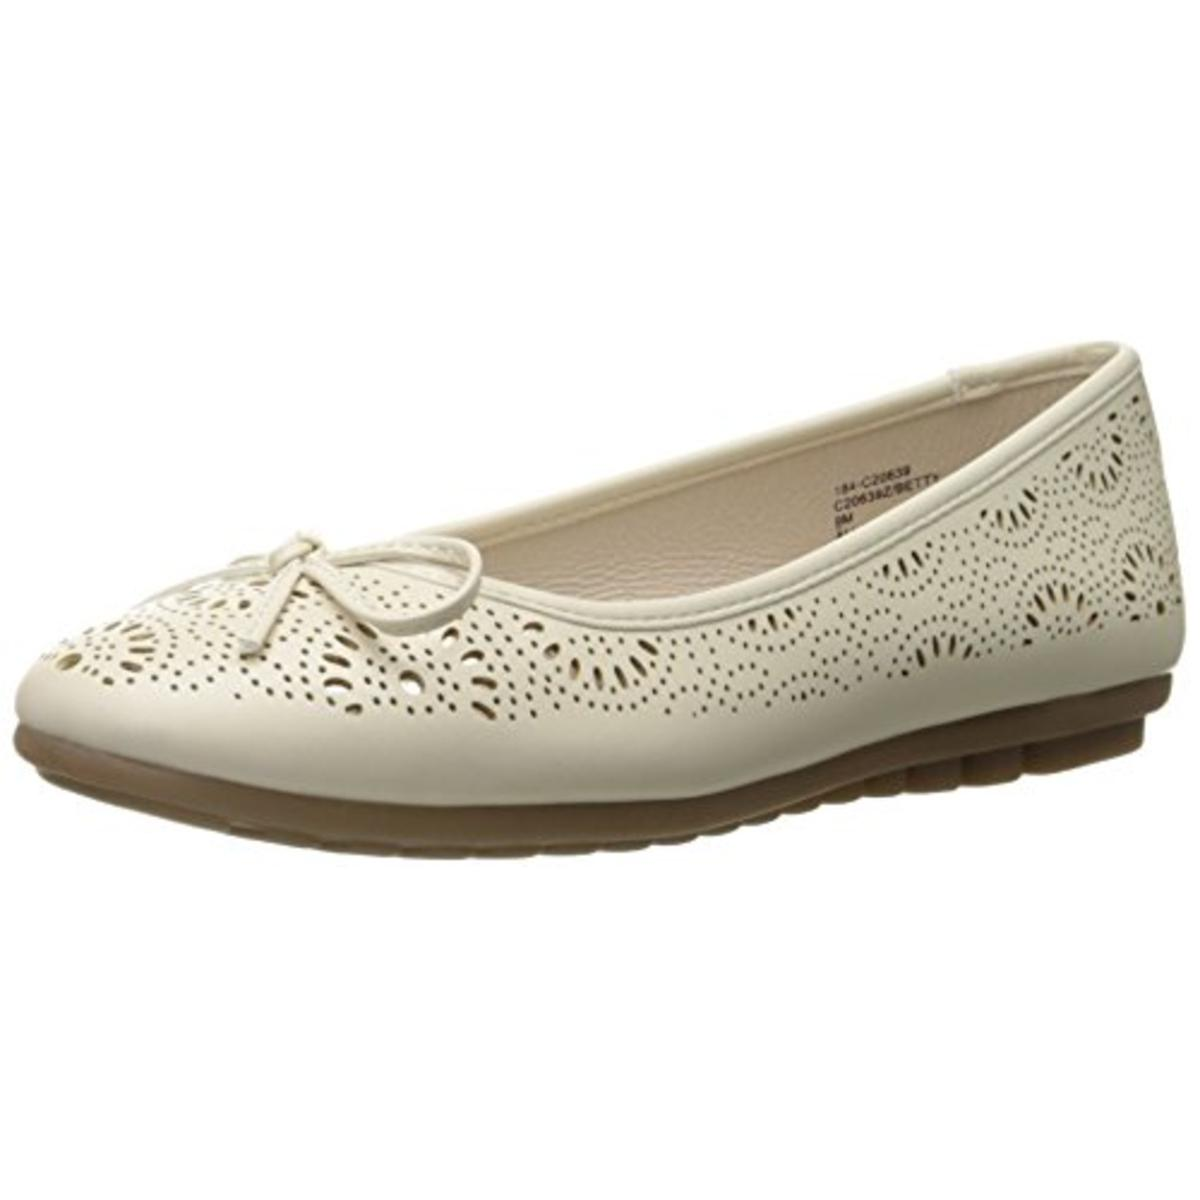 cliffs by white mountain 4220 womens betty faux leather